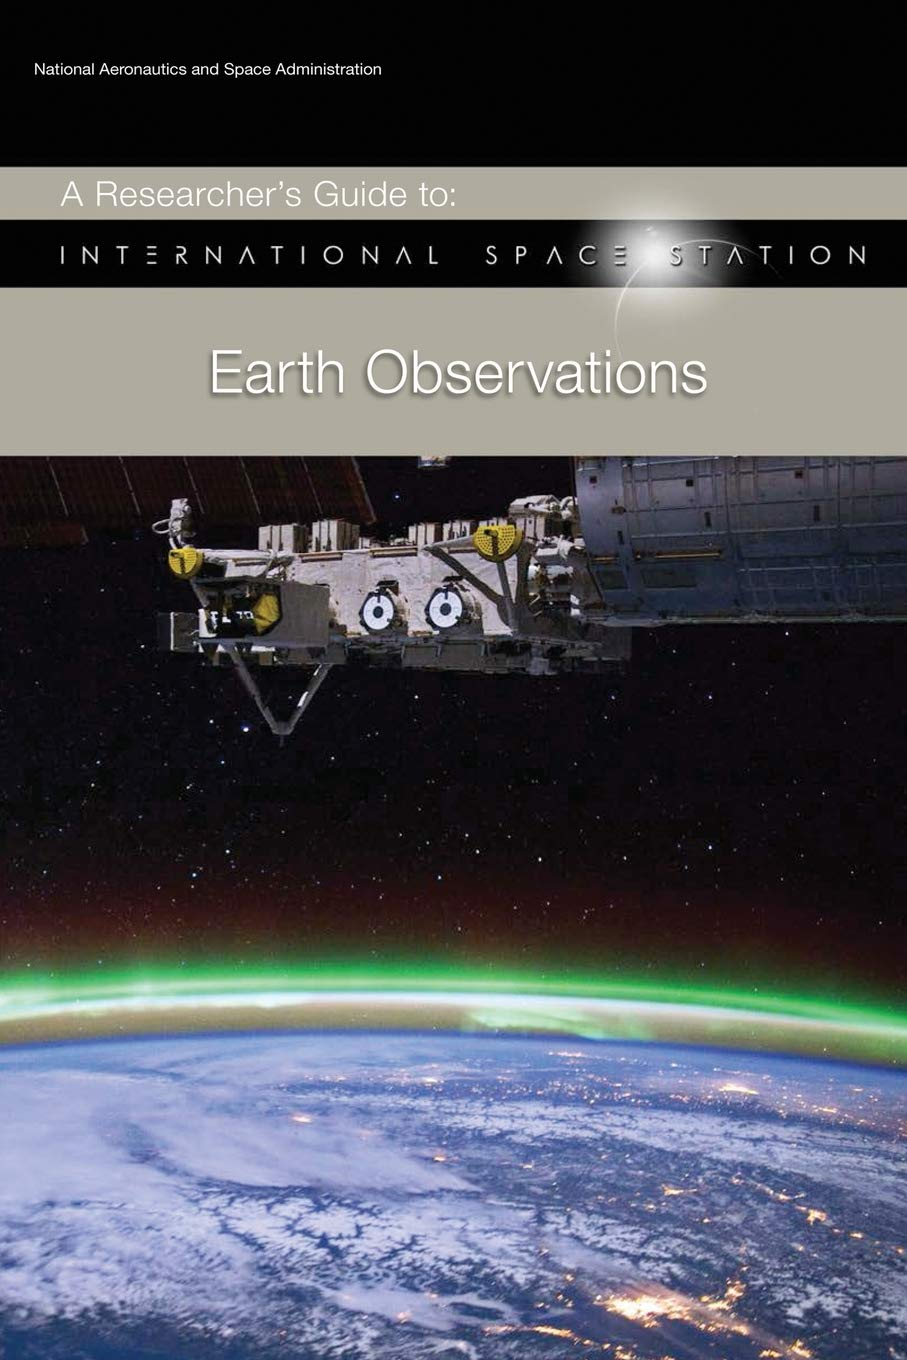 A Researcher's Guide to: International Space Station - Earth Observations